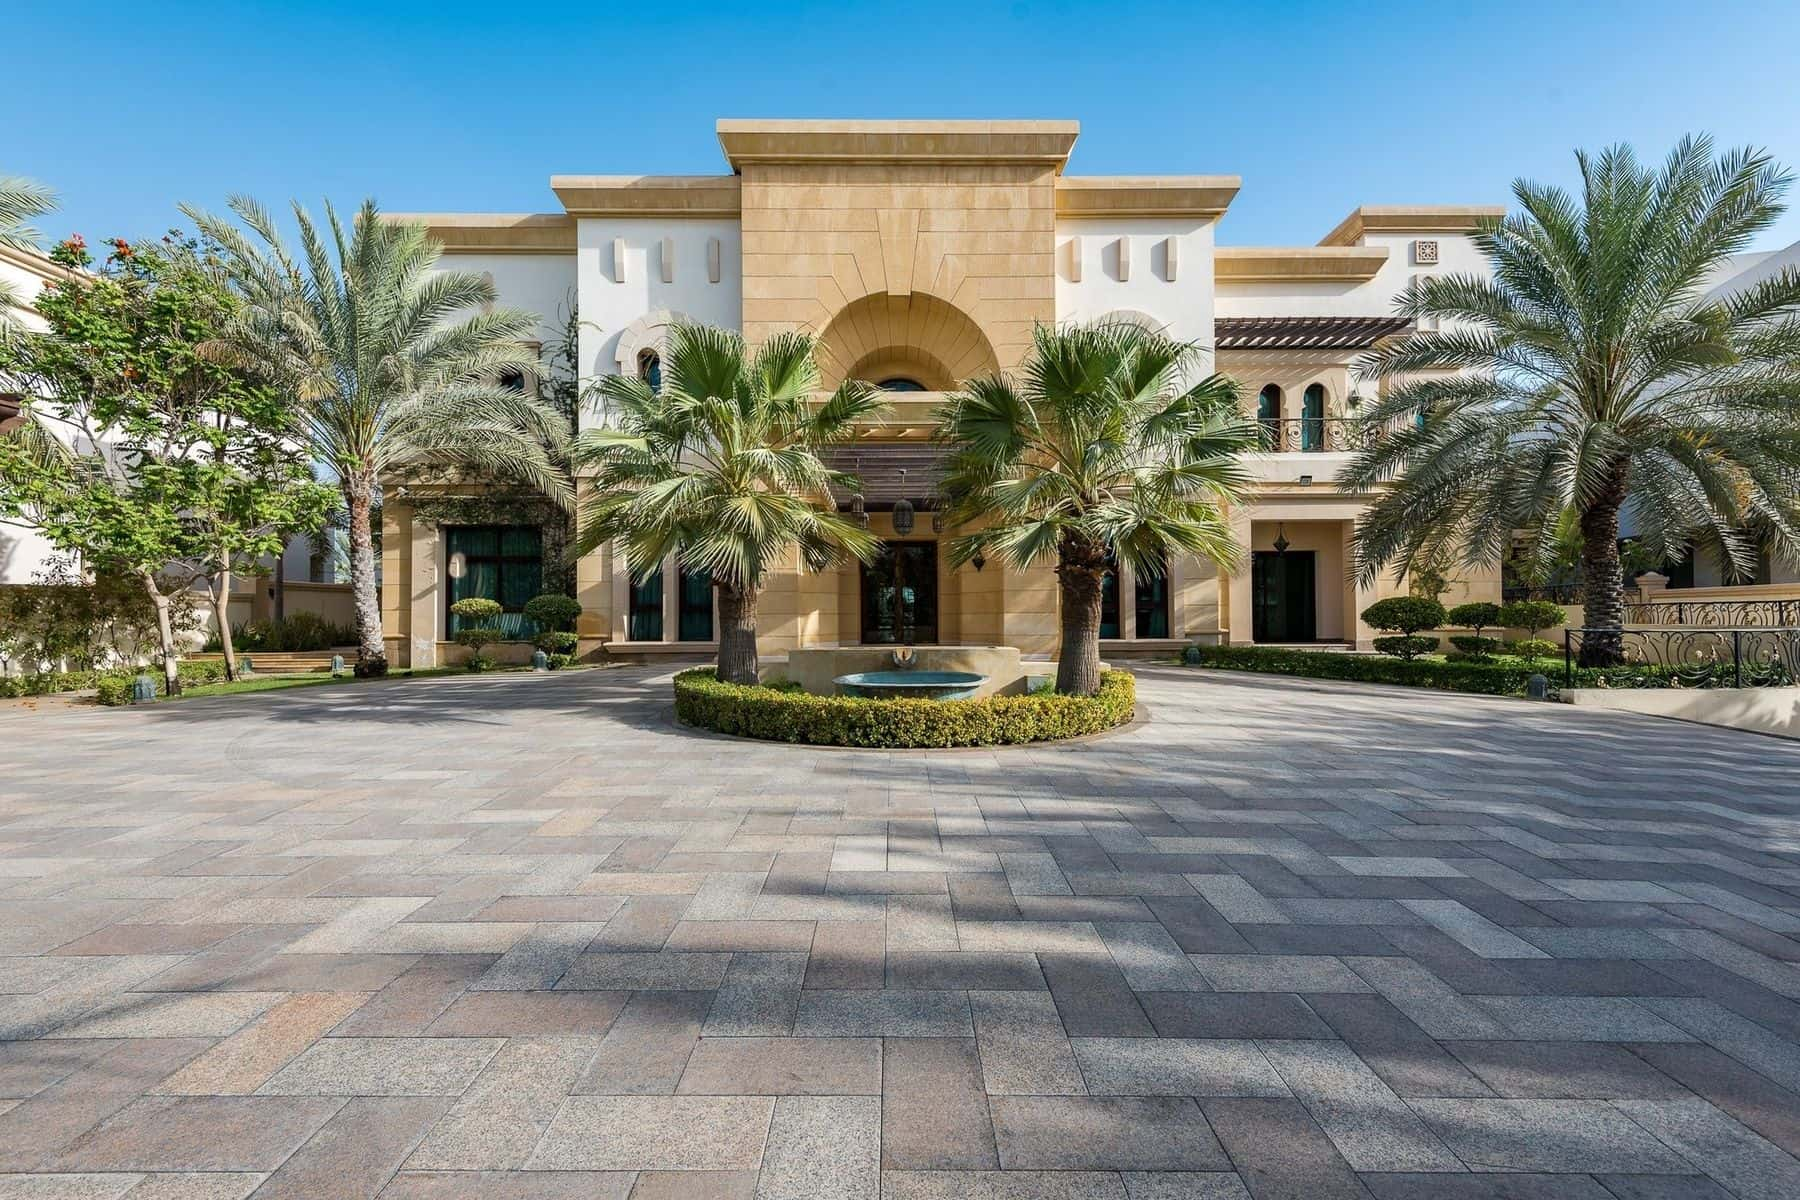 This incredible emirates hills villa could be yours for 32 4m Beautiful houses in dubai pictures